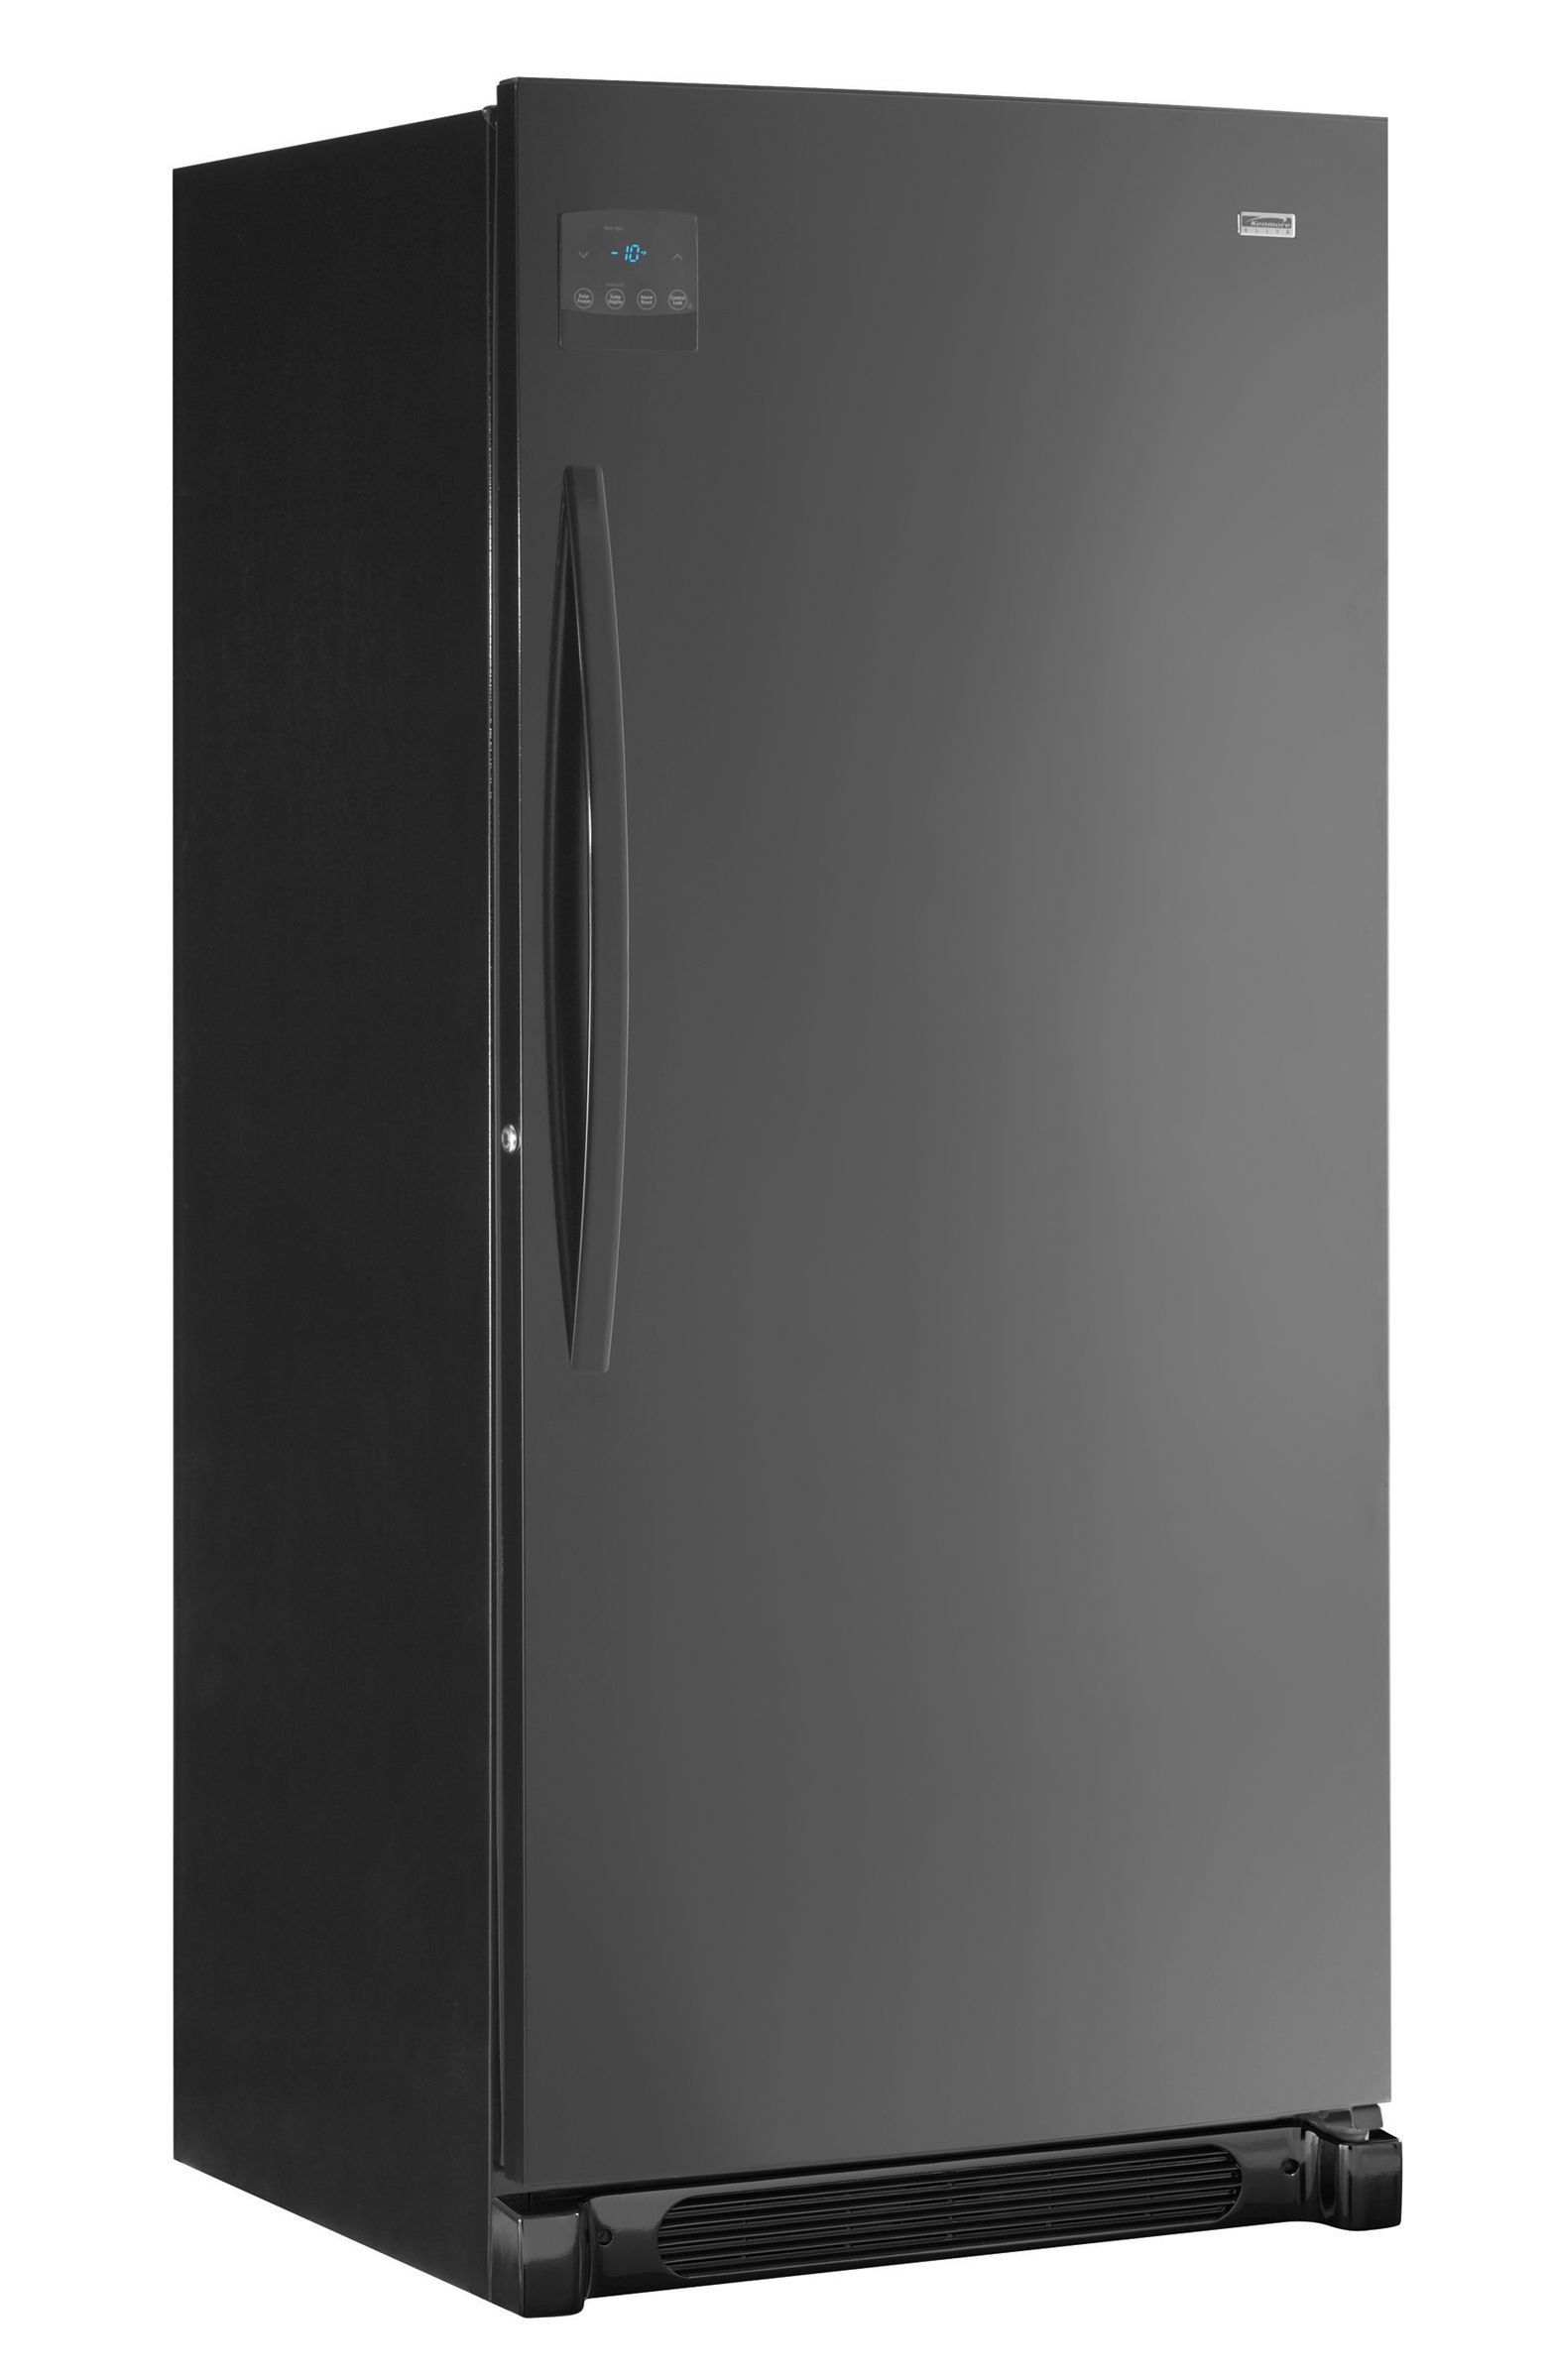 Kenmore Elite 20.6 cu. ft. Upright Freezer